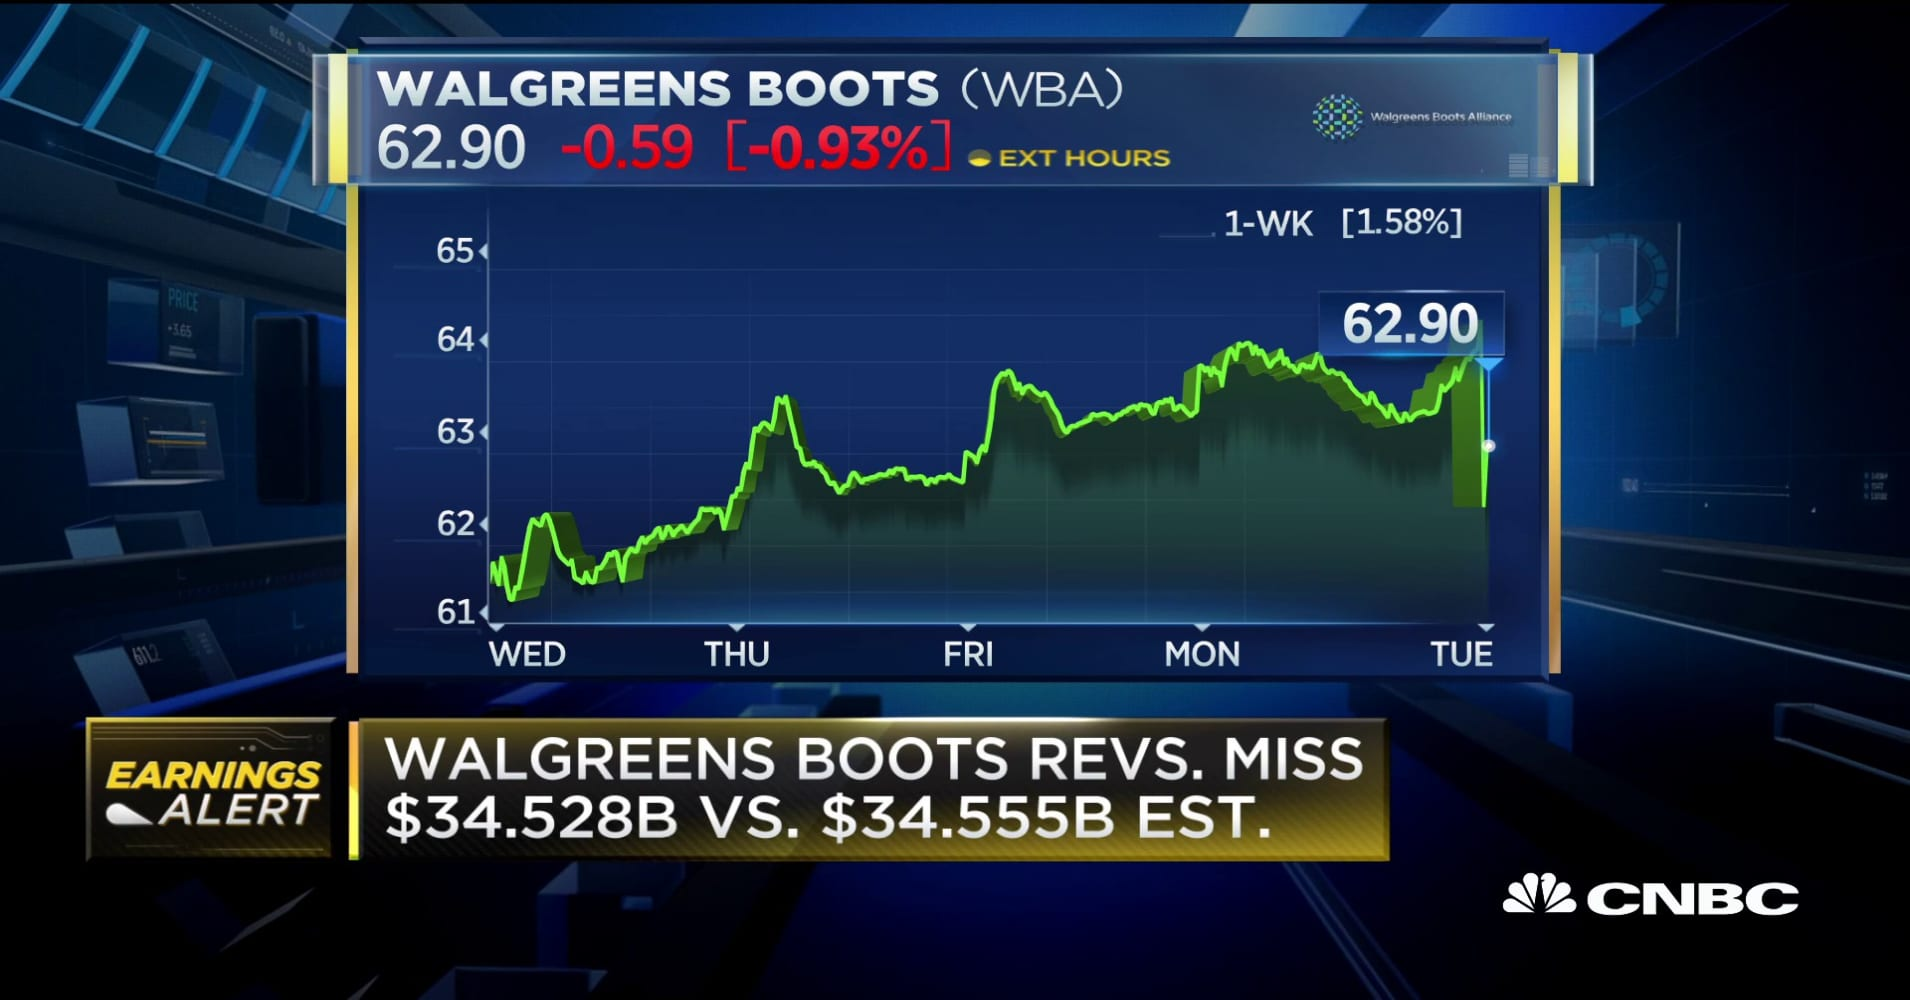 Walgreens Boots reports EPS miss by $0.08